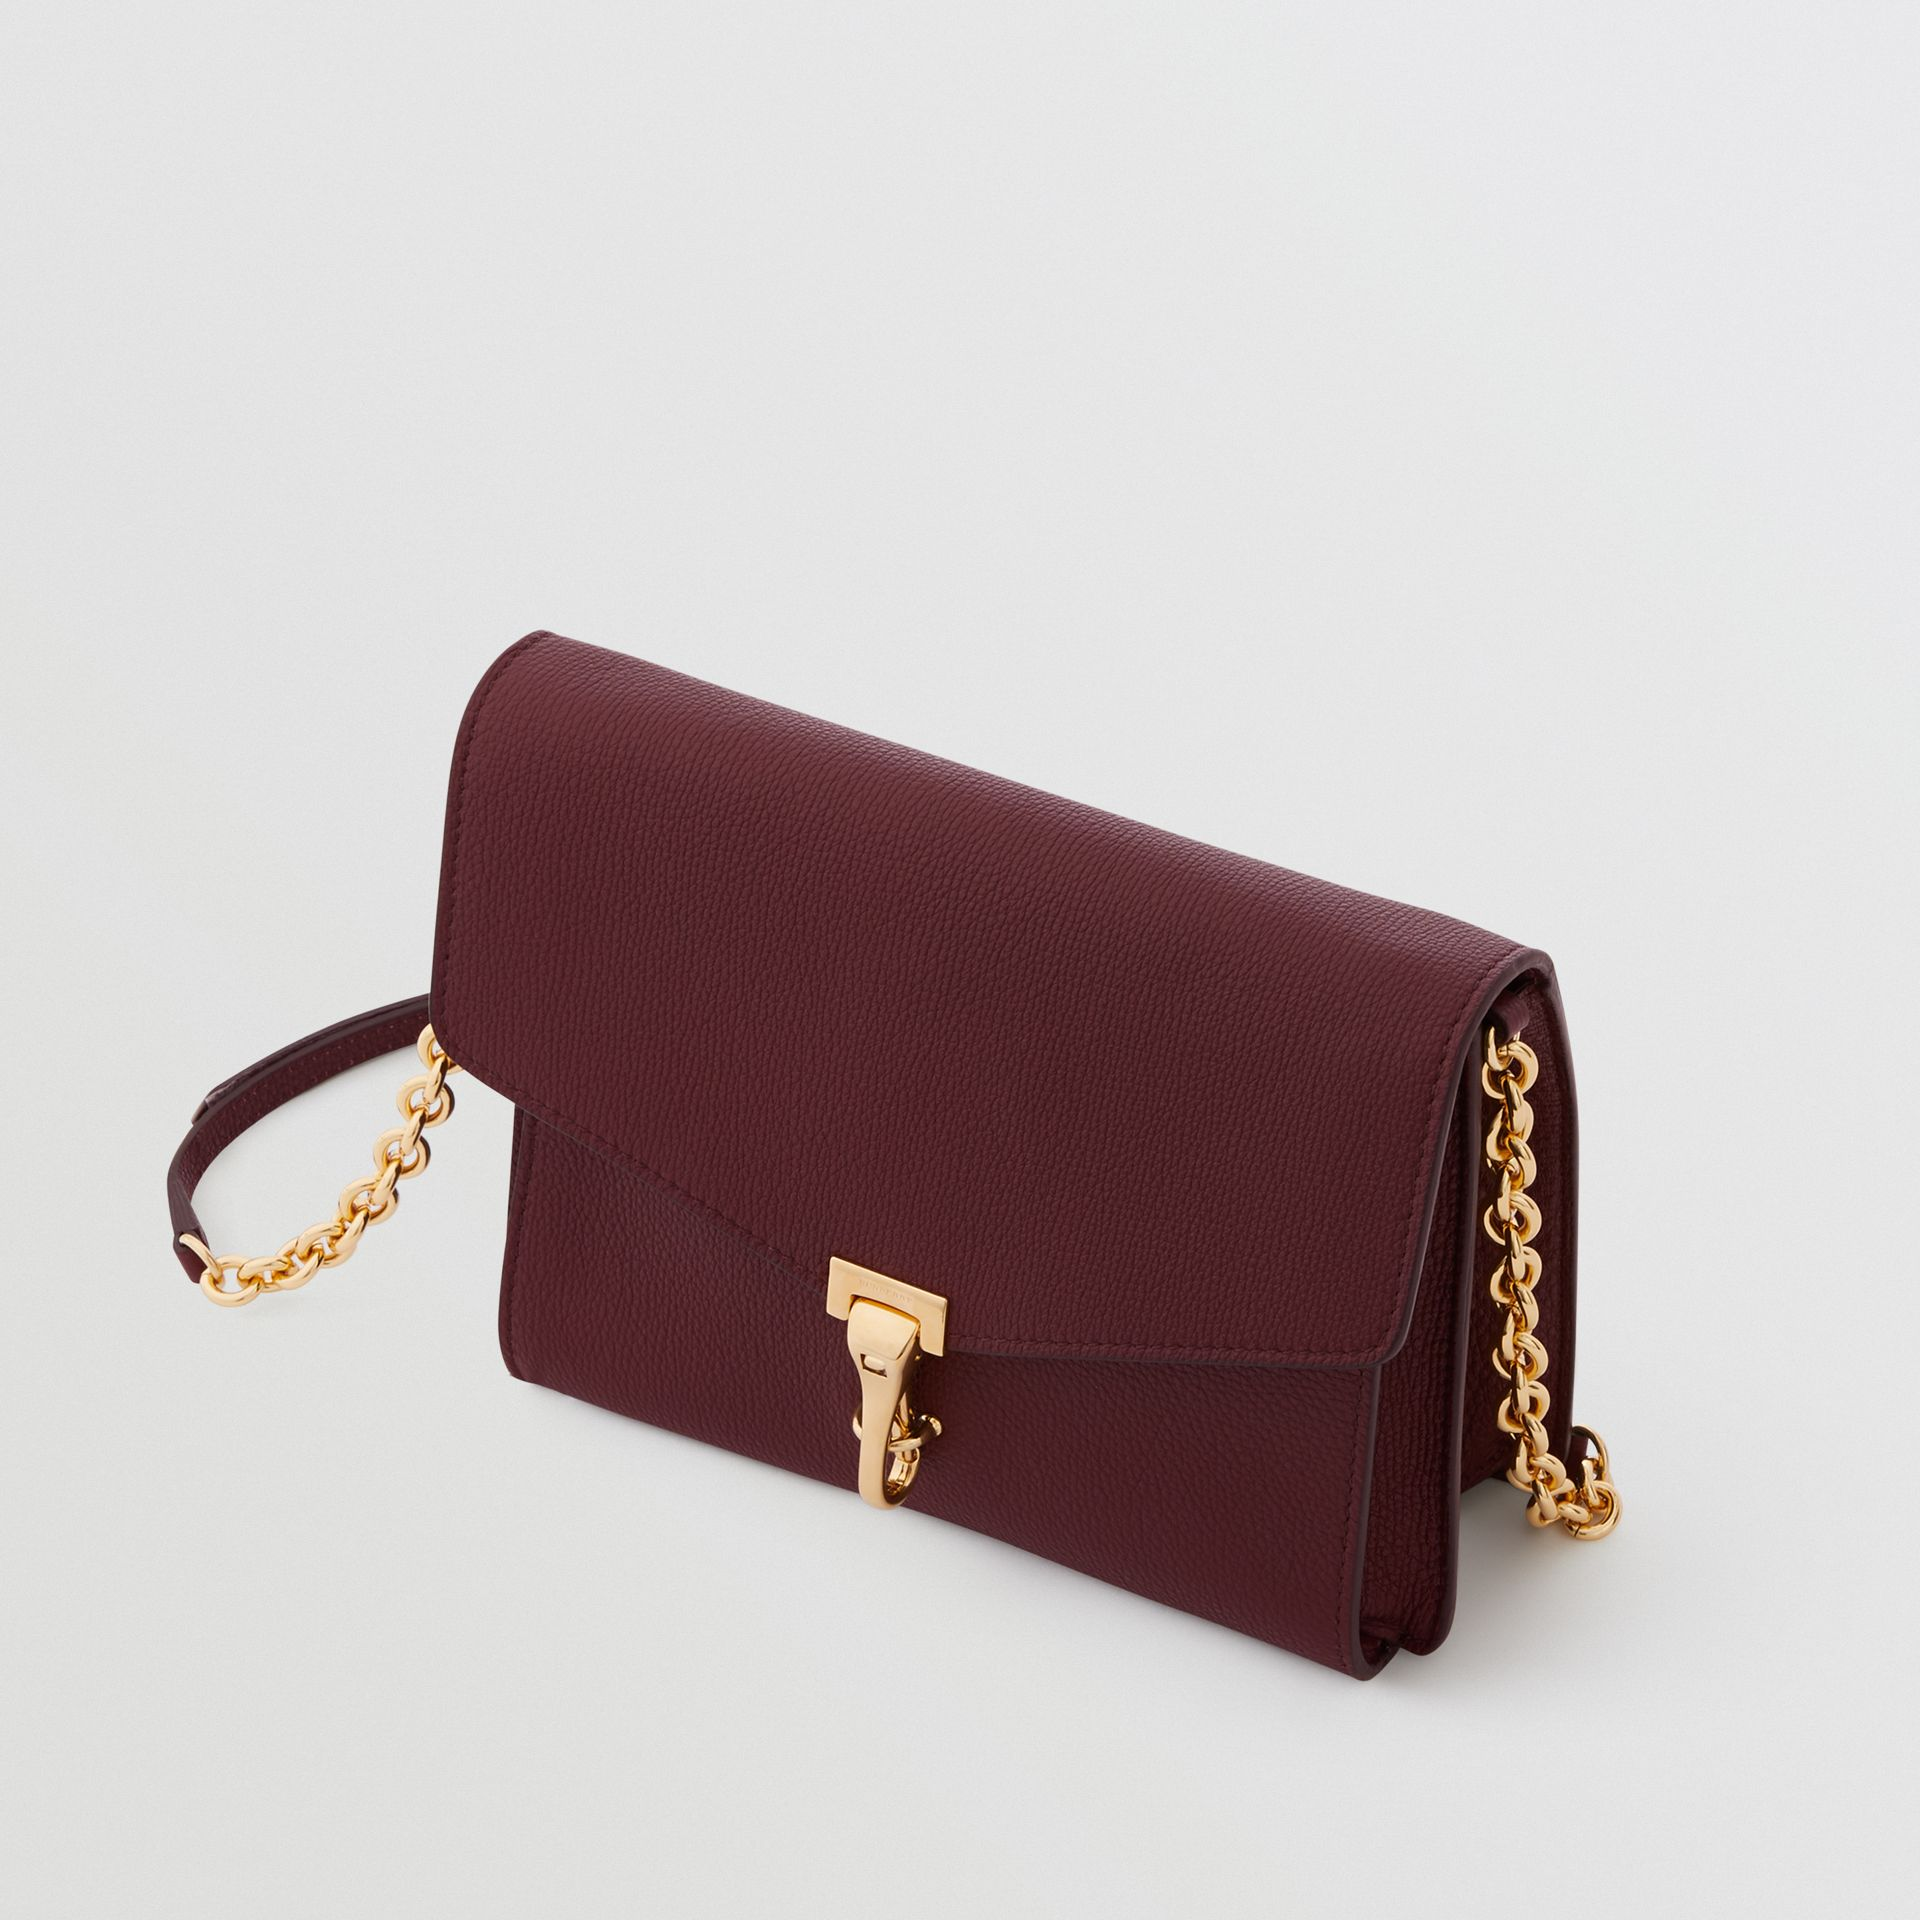 Small Leather Crossbody Bag in Mahogany Red - Women | Burberry United States - gallery image 4